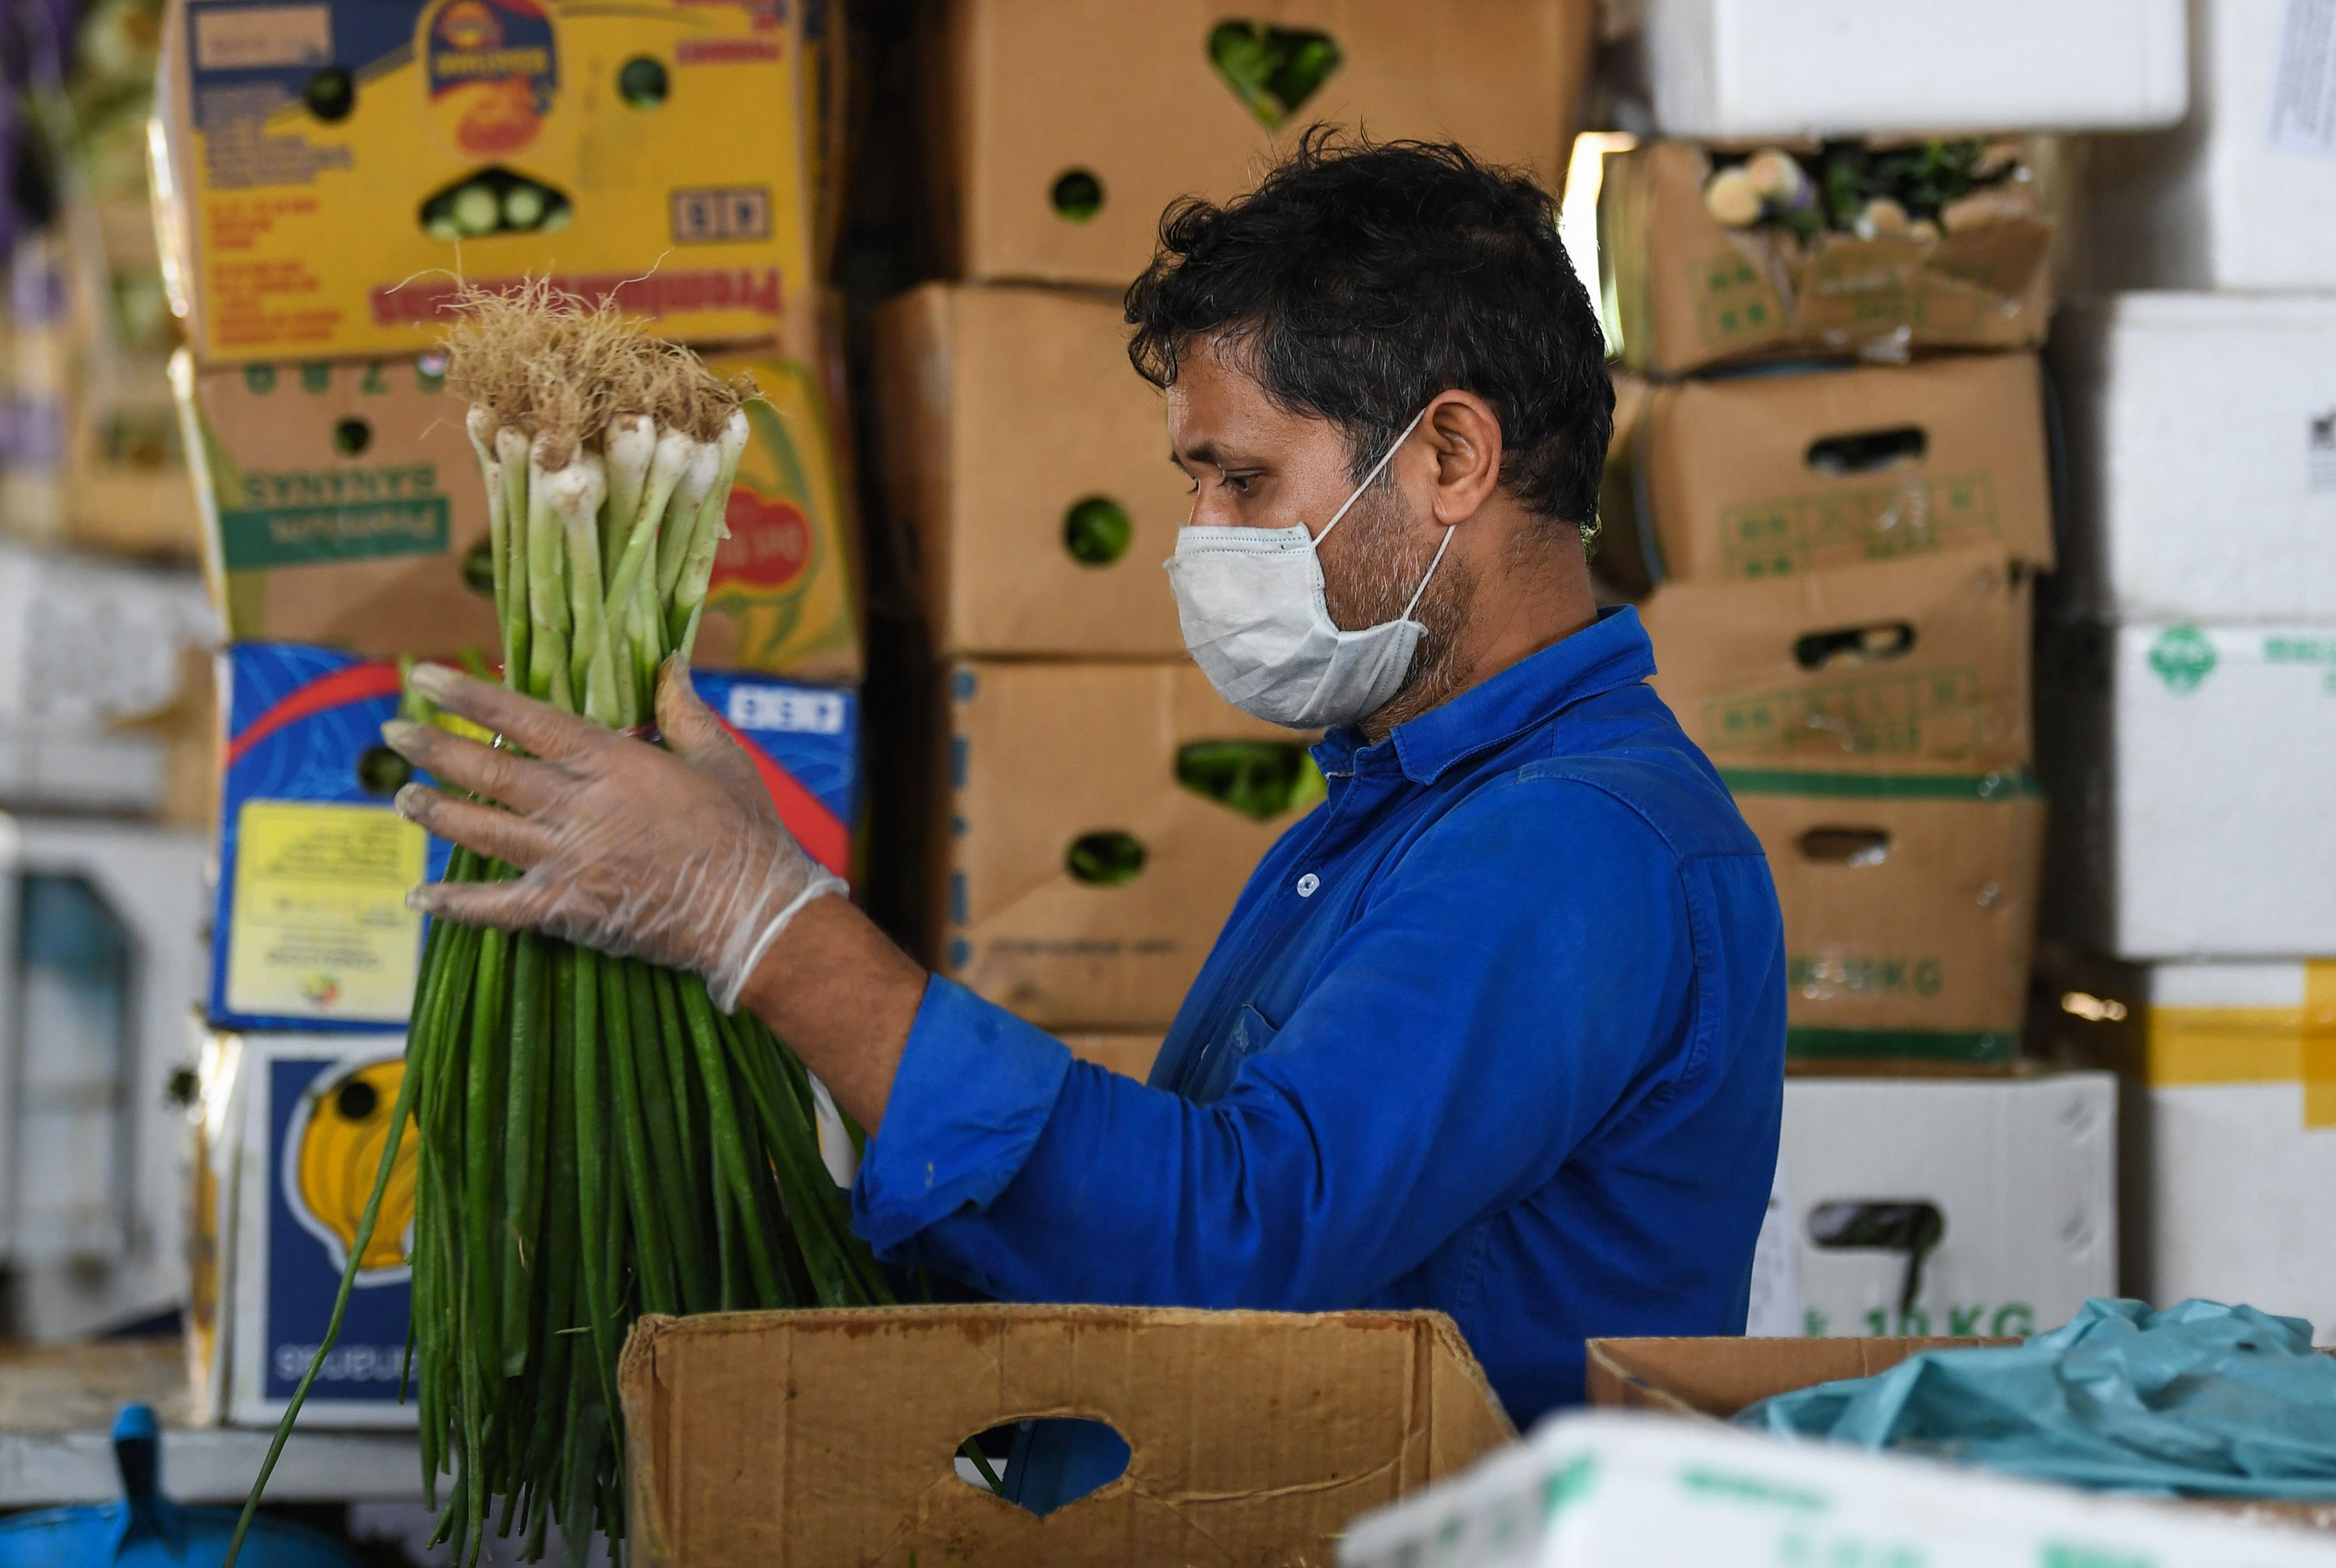 A worker sorts produce at a market in Dubai on March 21.